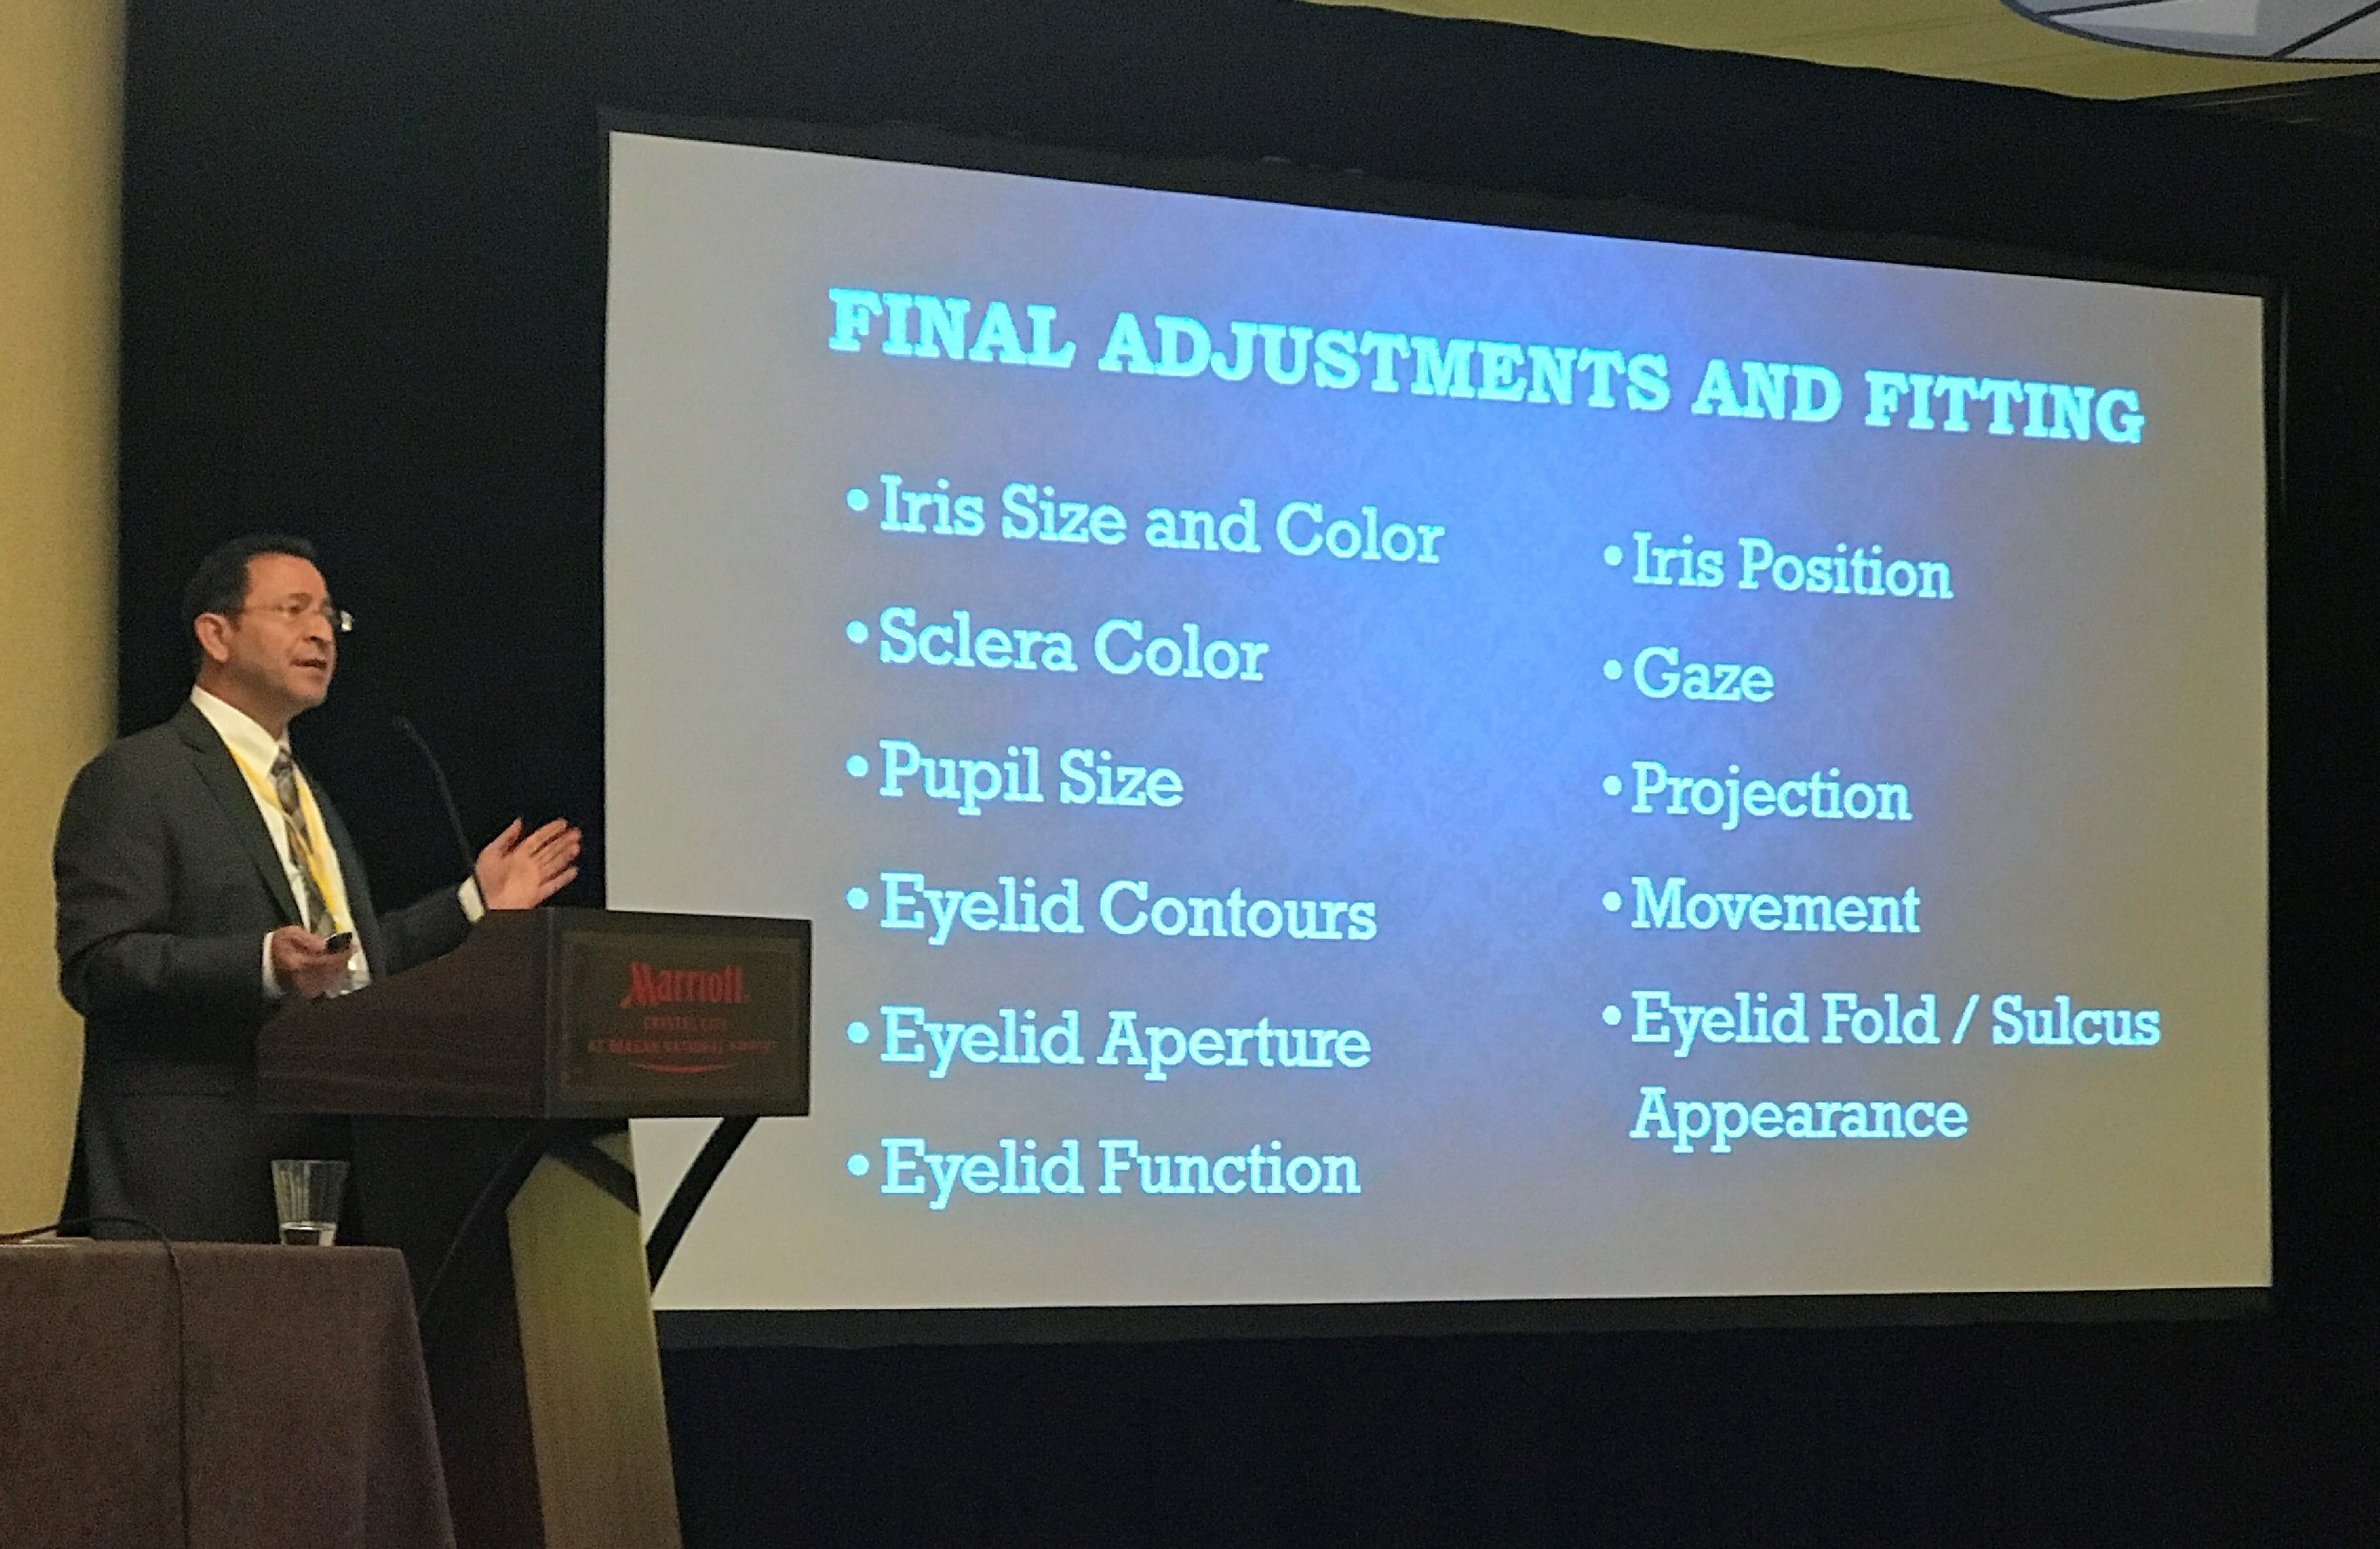 "Stephen Haddad describes the process of fitting an artificial eye. The slide seen behind him is titled ""Final Adjustment and Fitting"" and lists the different elements of the process: iris size and color, sclera color, pupil size, eyelid contours, eyelid aperture, eyelid function, iris position, gaze, projection, movement, and eyelid fold / sulcus appearance."